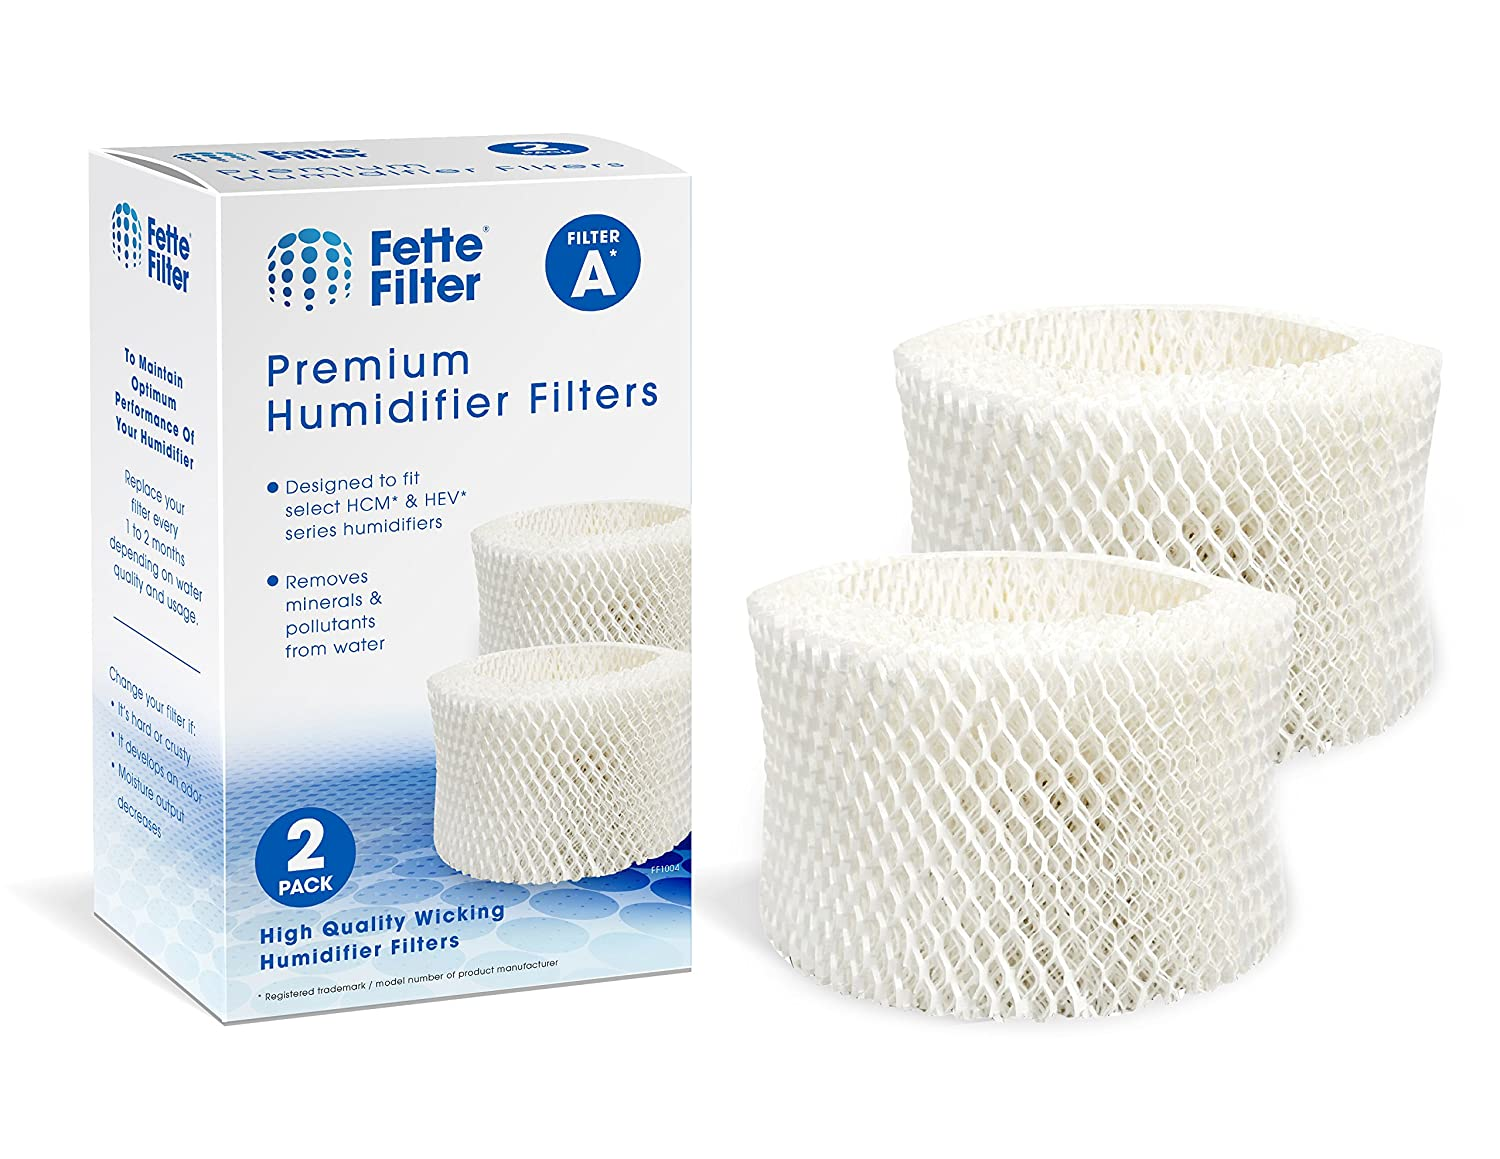 Fette Filter - Humidifier Wicking Filters Compatible with Honeywell HAC-504AW, Filter A (2-Pack)